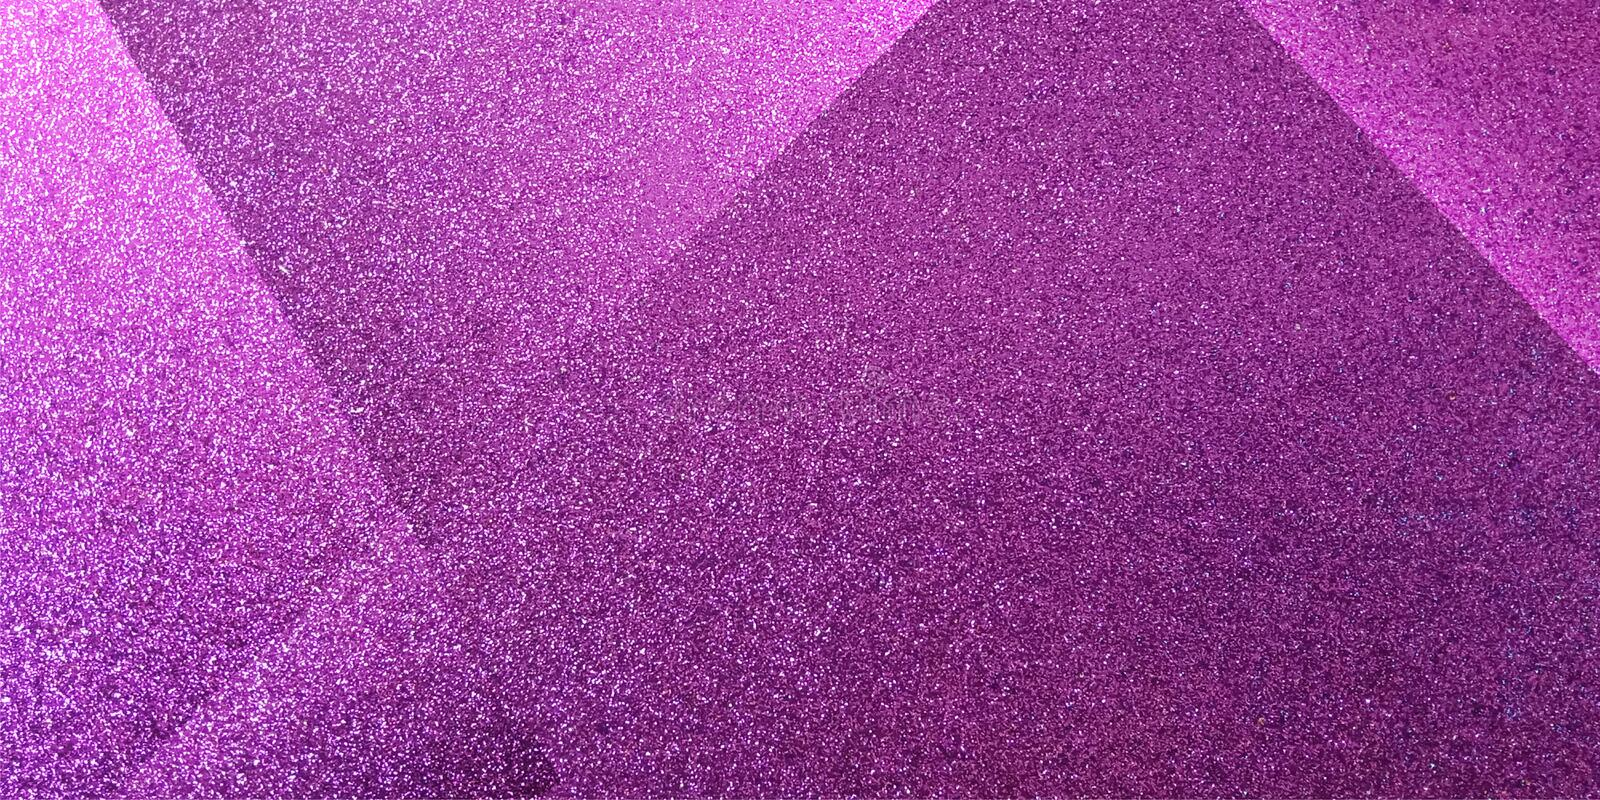 Abstract purple background shaded striped pattern and blocks in diagonal lines with vintage purple texture. stock photo